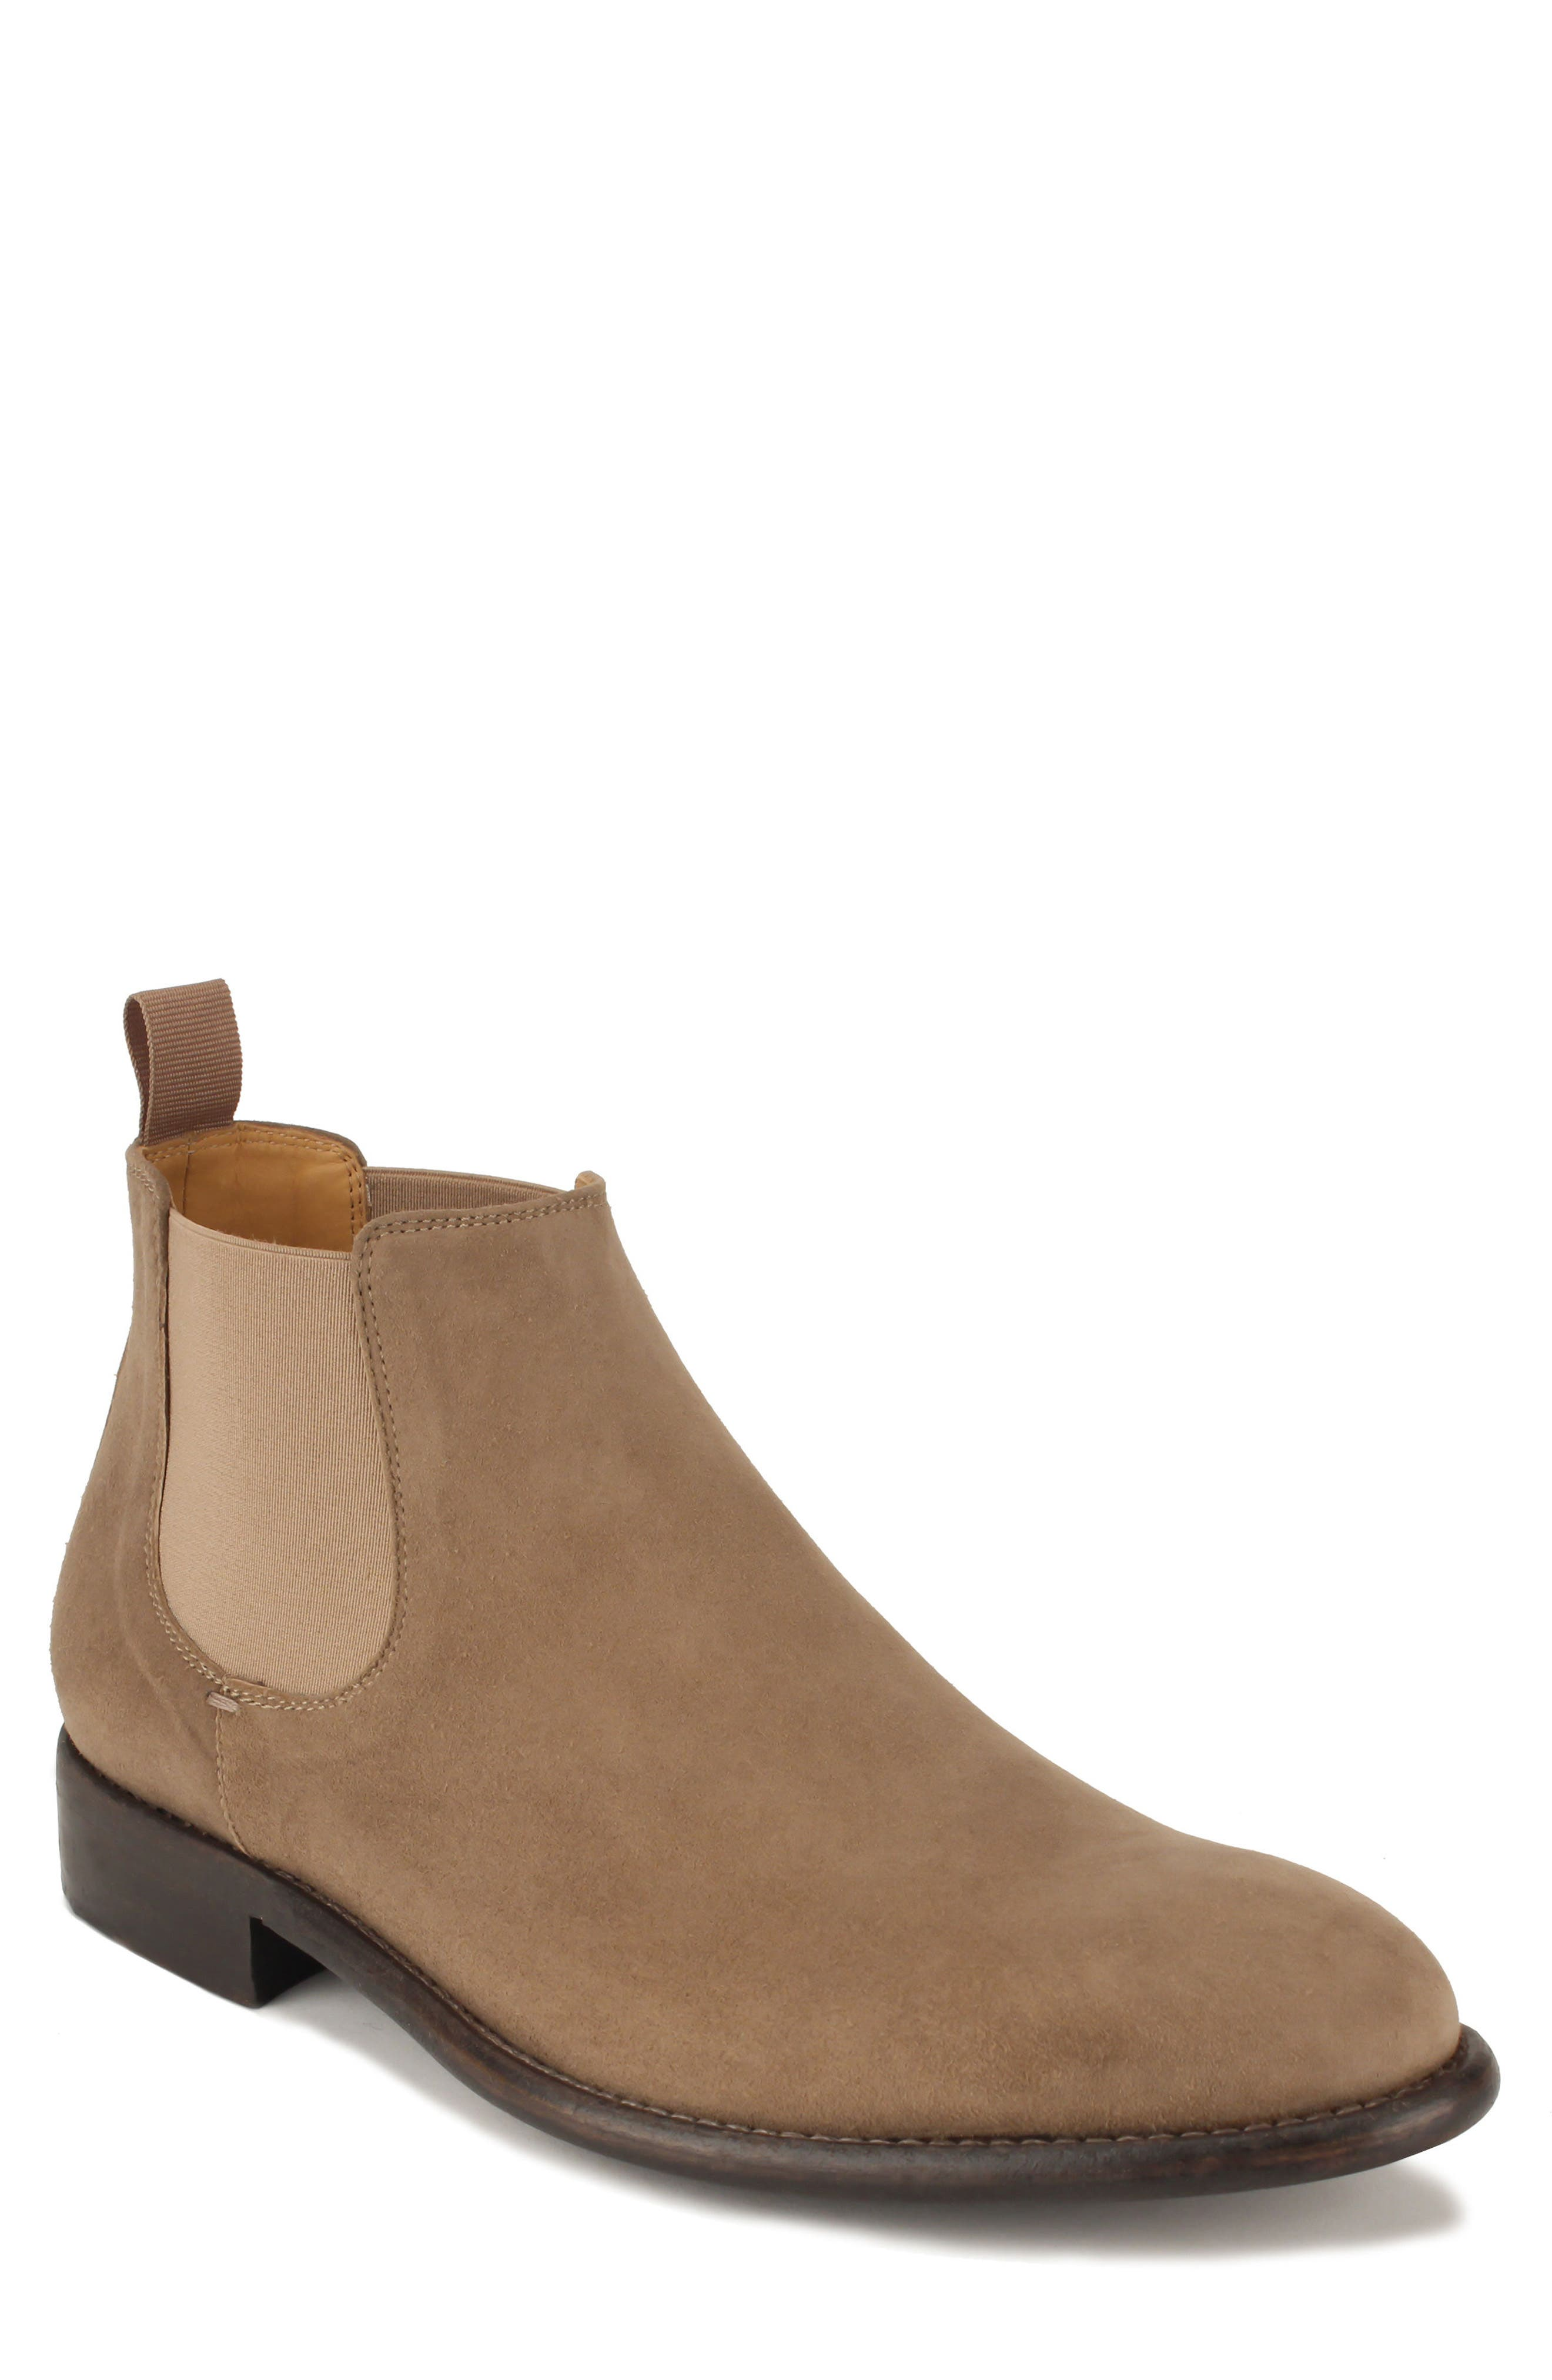 Gordon Rush Dawson Chelsea Boot (Men)